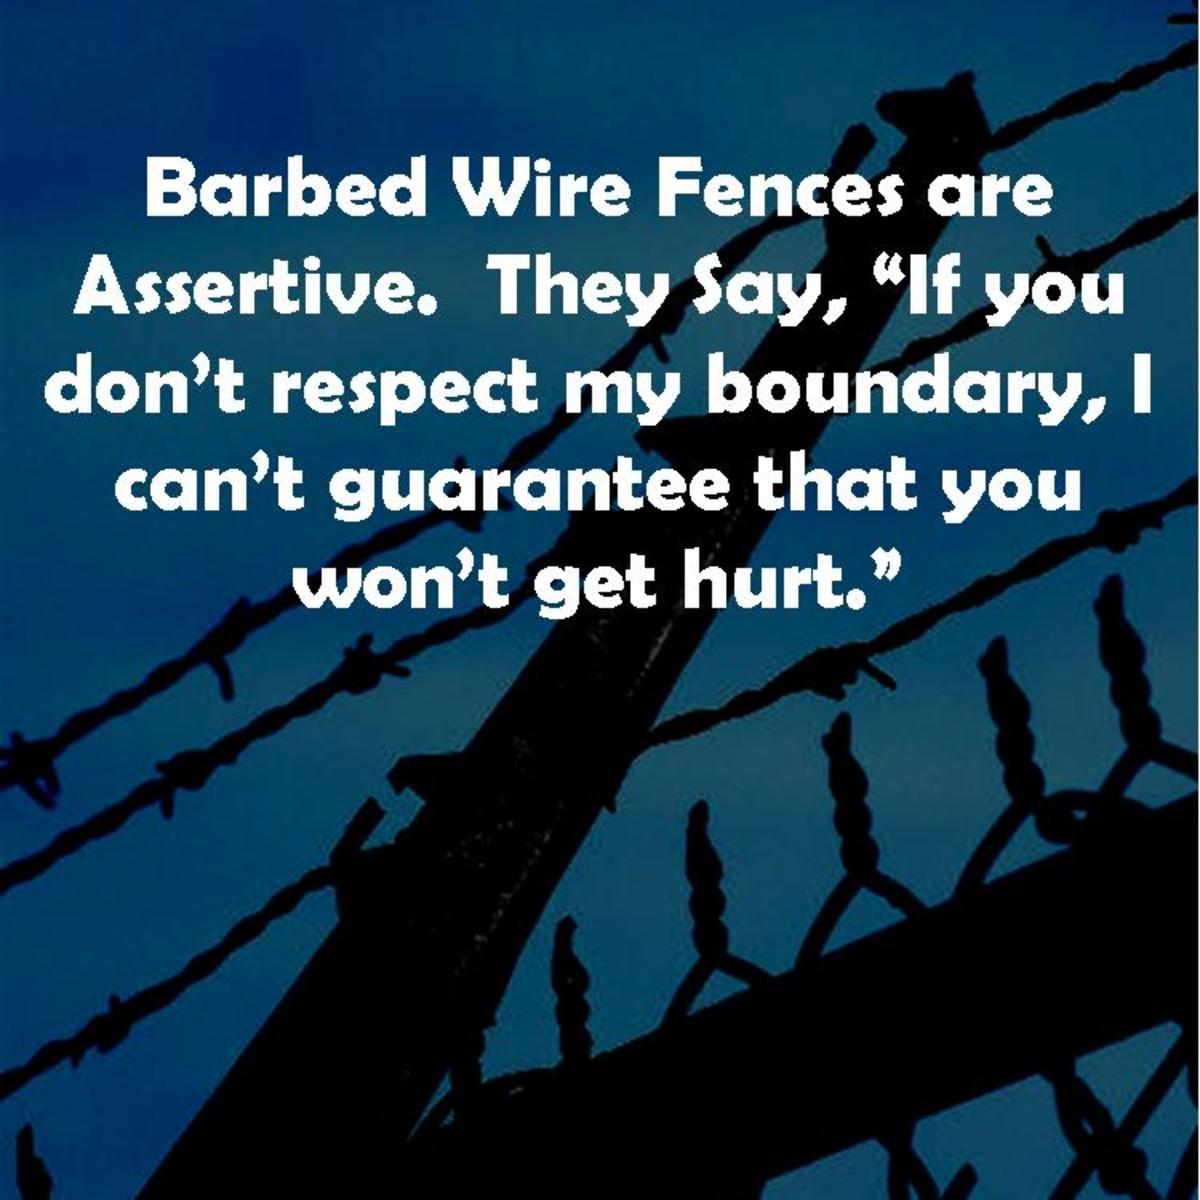 Be a barbed wire fence.  Set a boundary that makes people think twice about trying to surmount it without hurting, but give them a chance respect the boundary.